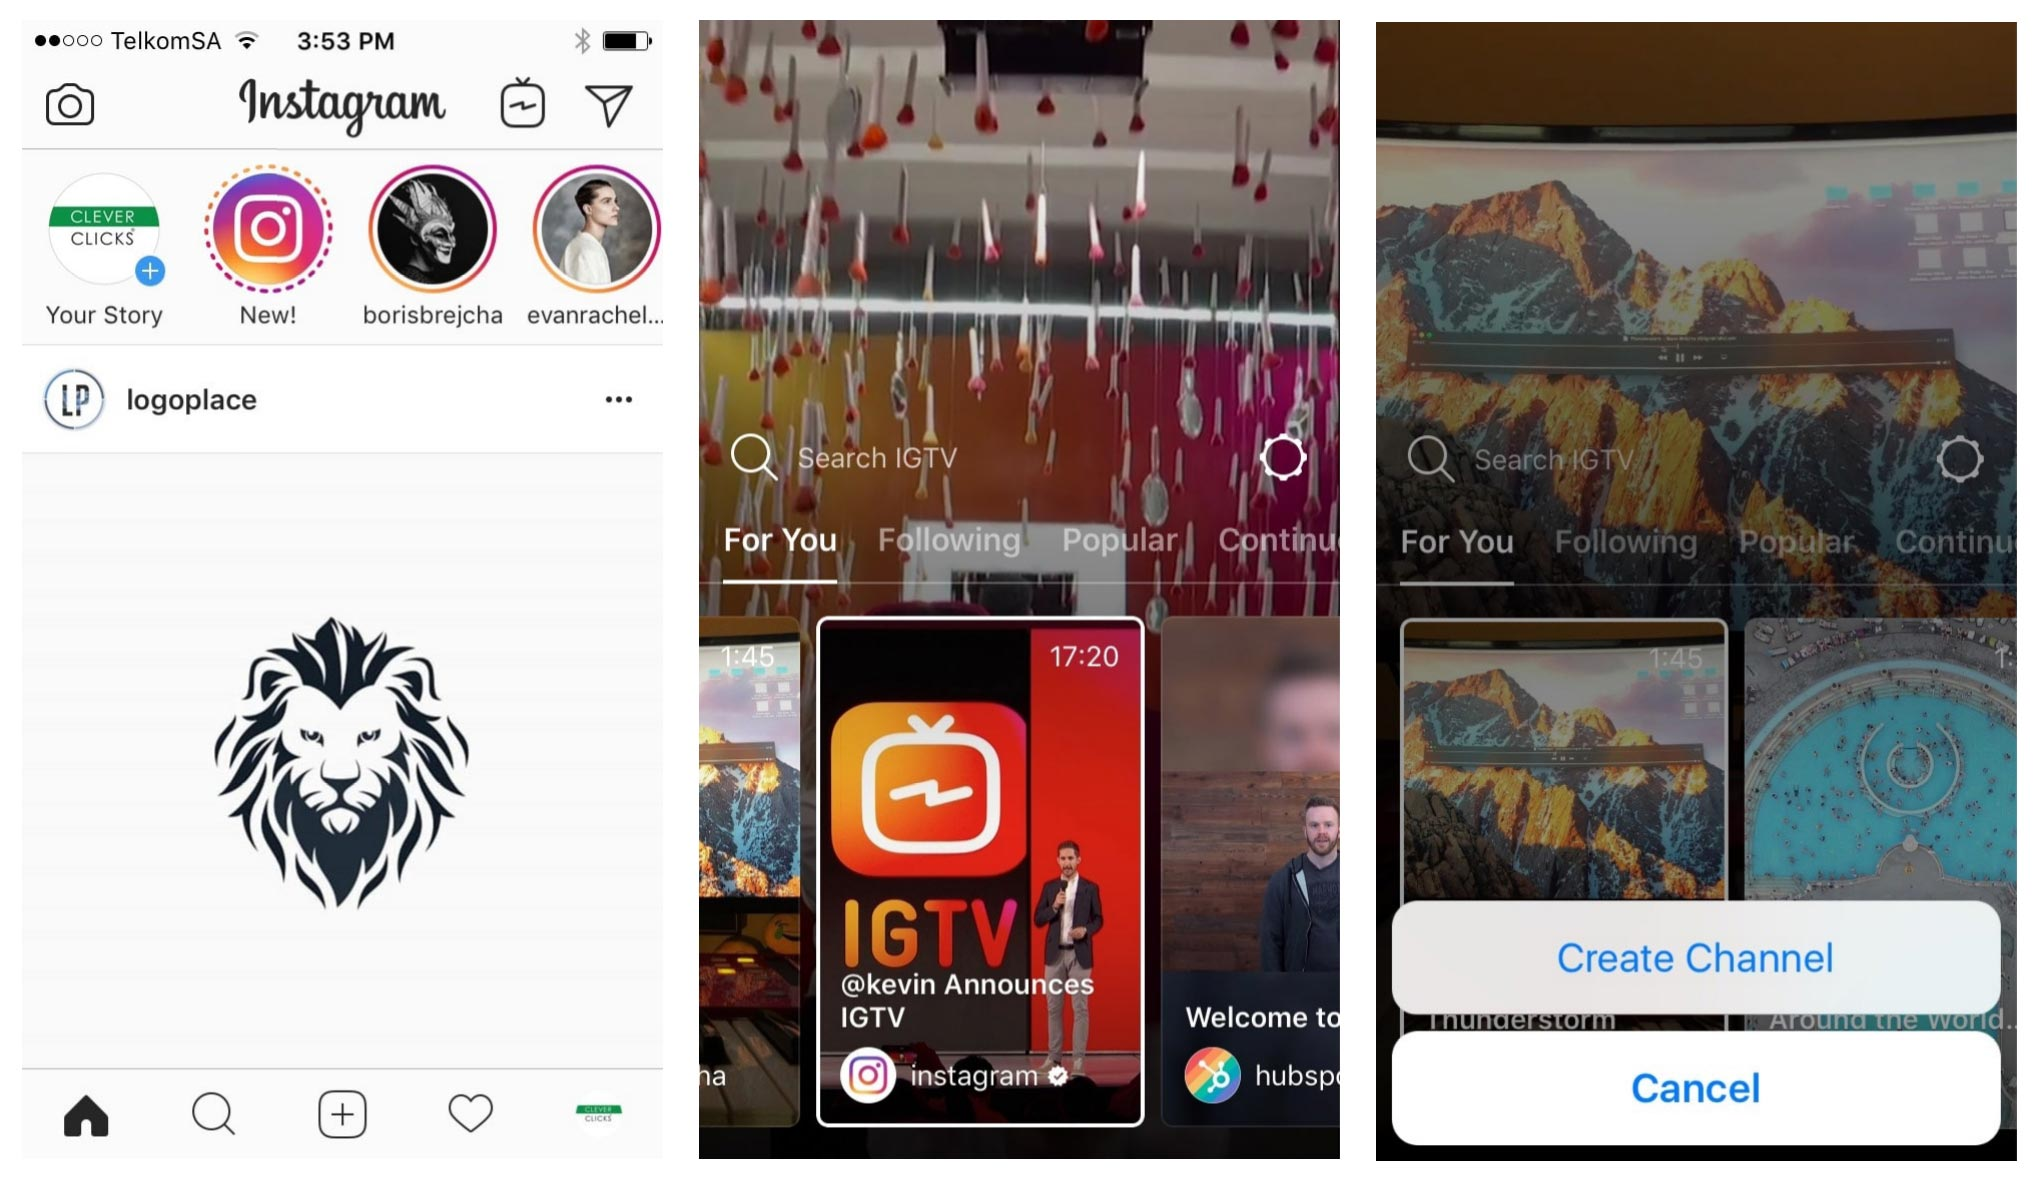 instagram-IGTV-create-channel